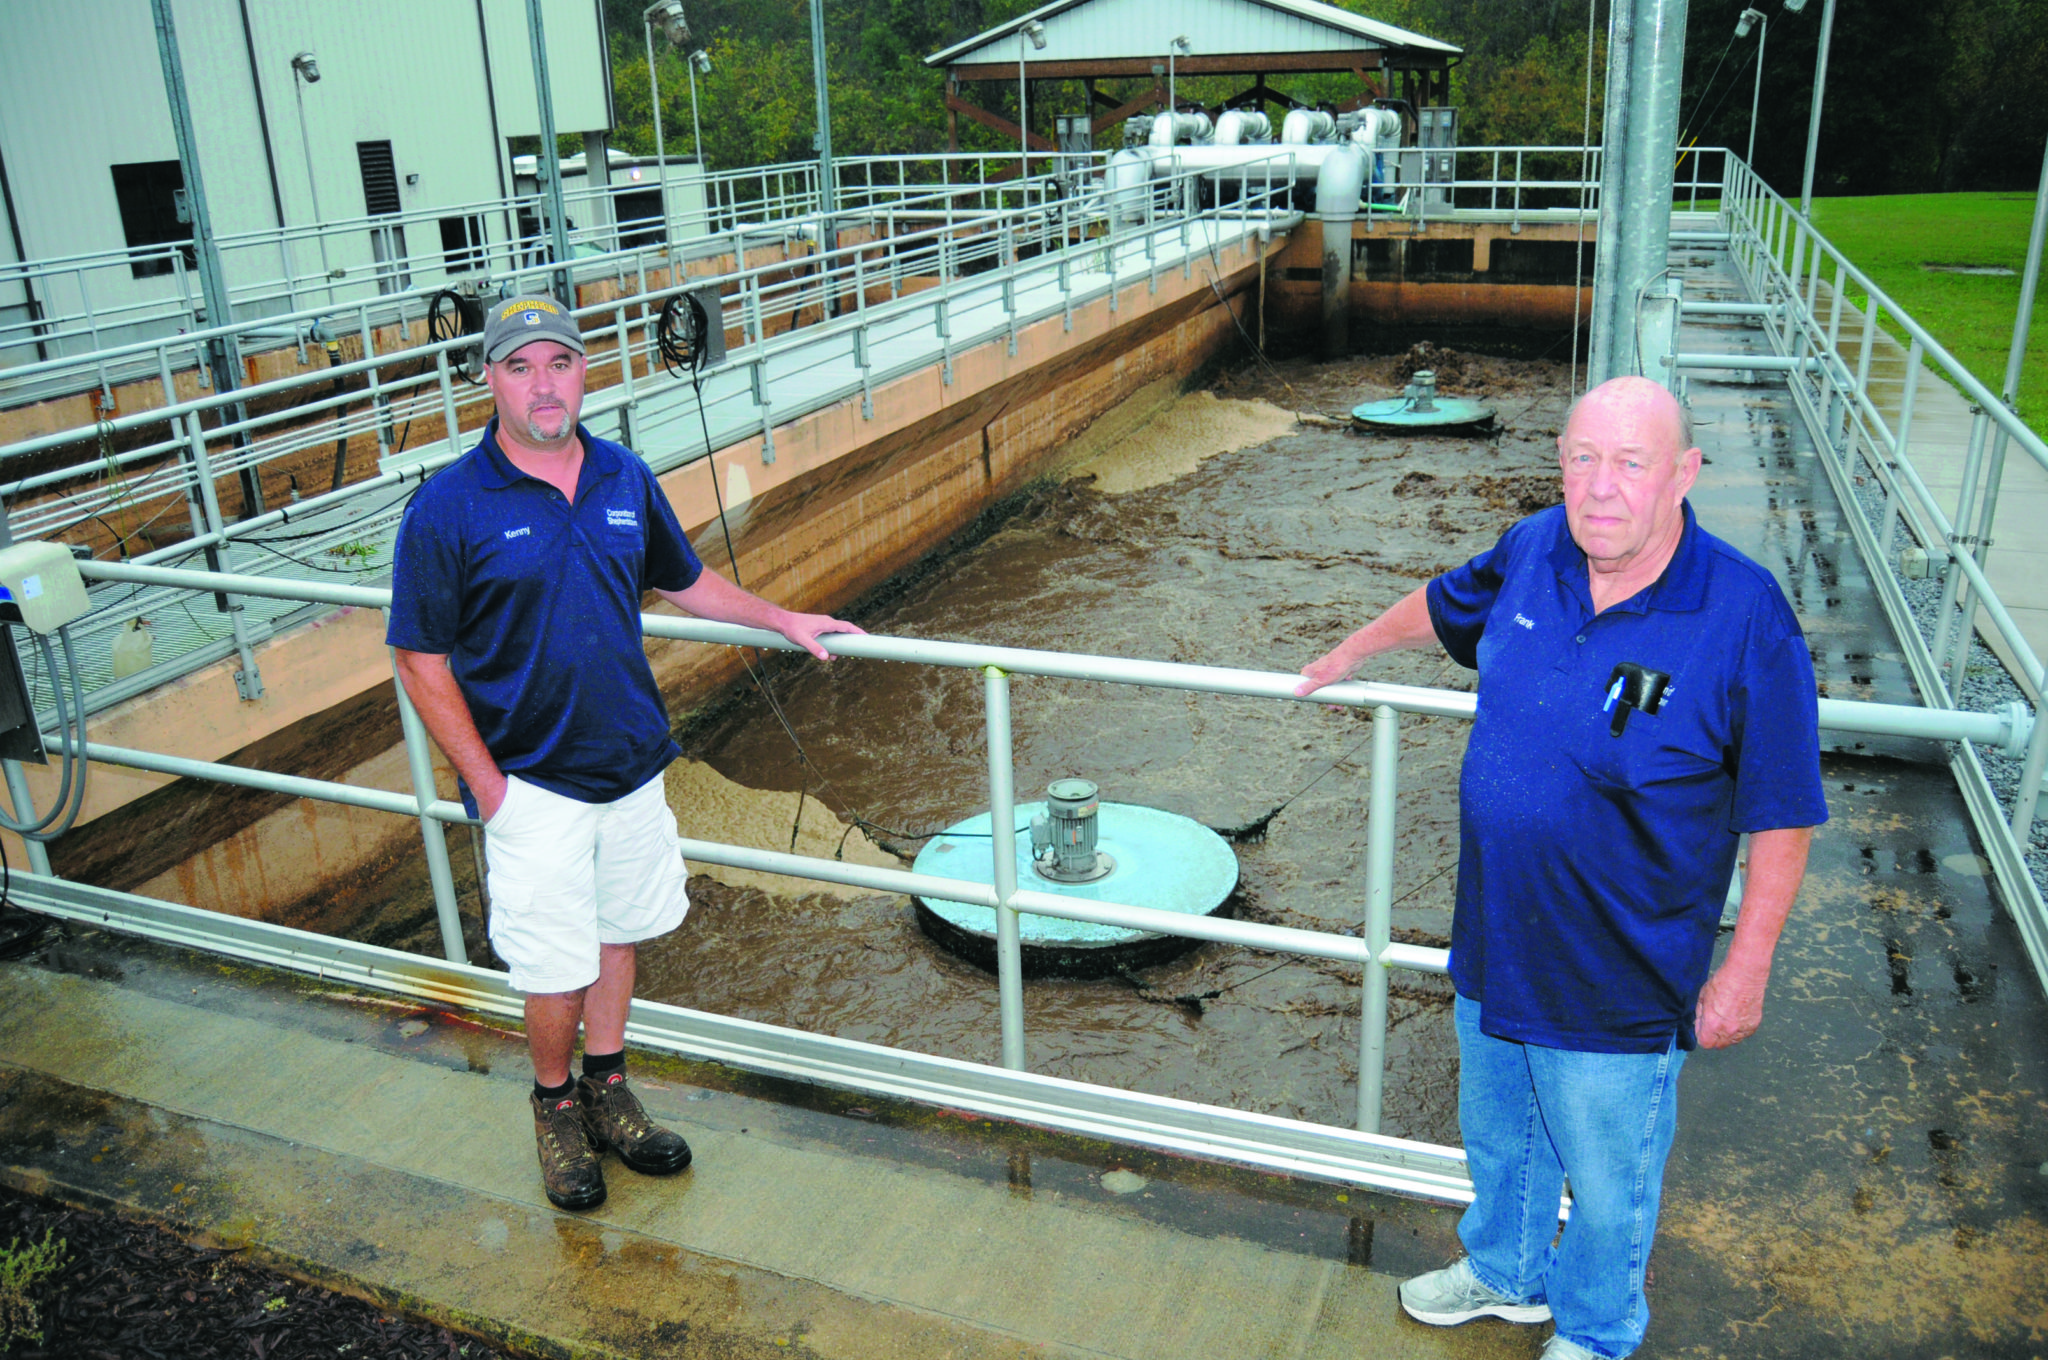 Meeting the mark Shepherdstown s sewage treatment plant shows